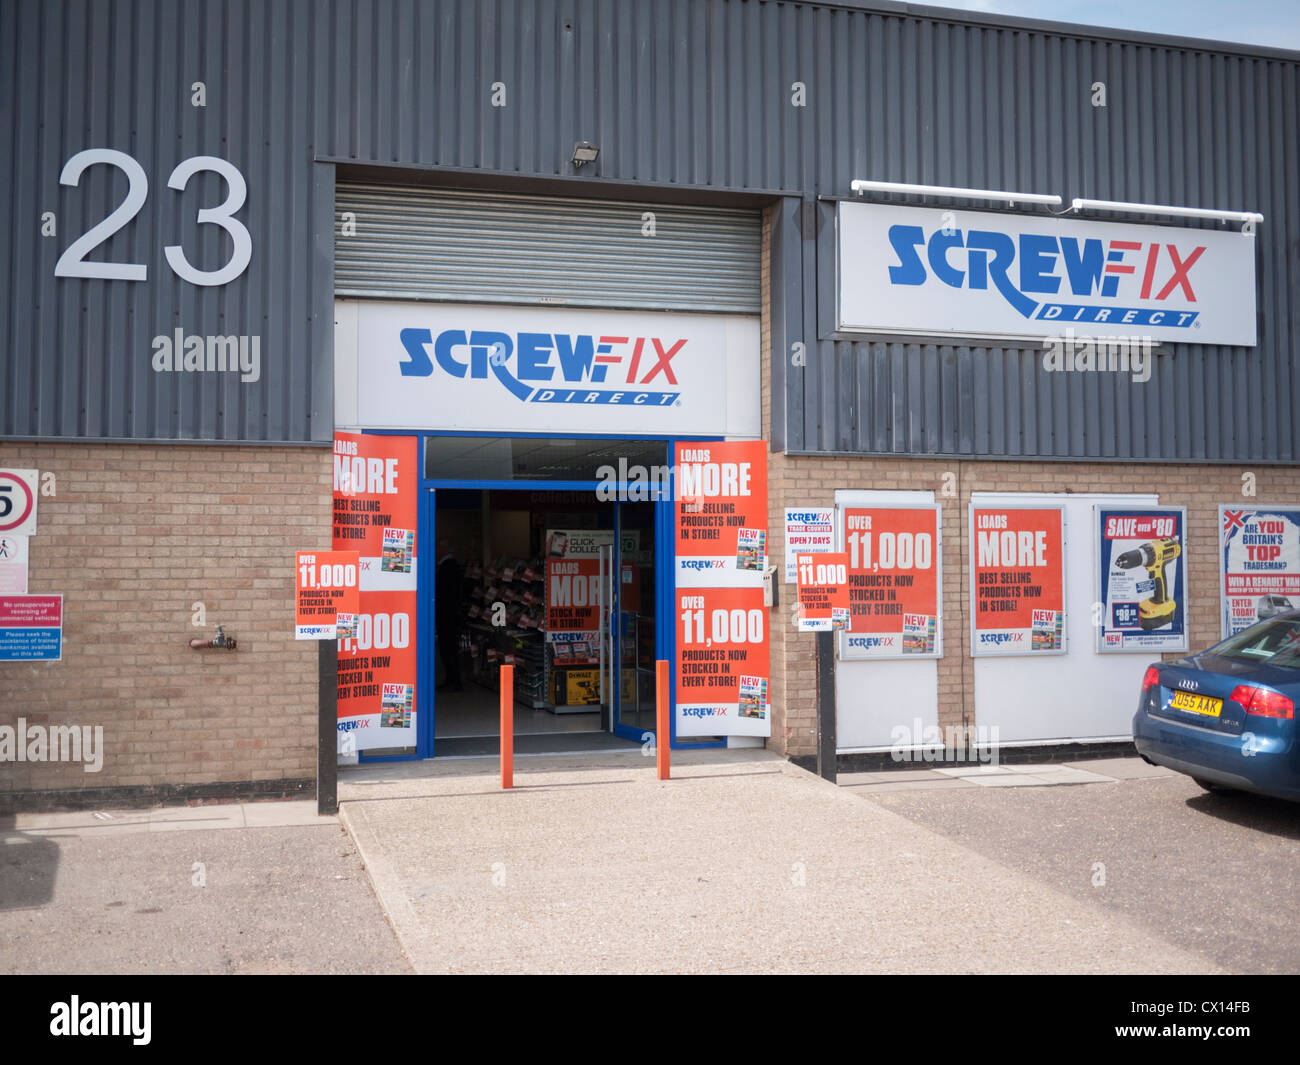 The Screwfix Direct Shop or warehouse in Cambridge UK Stock